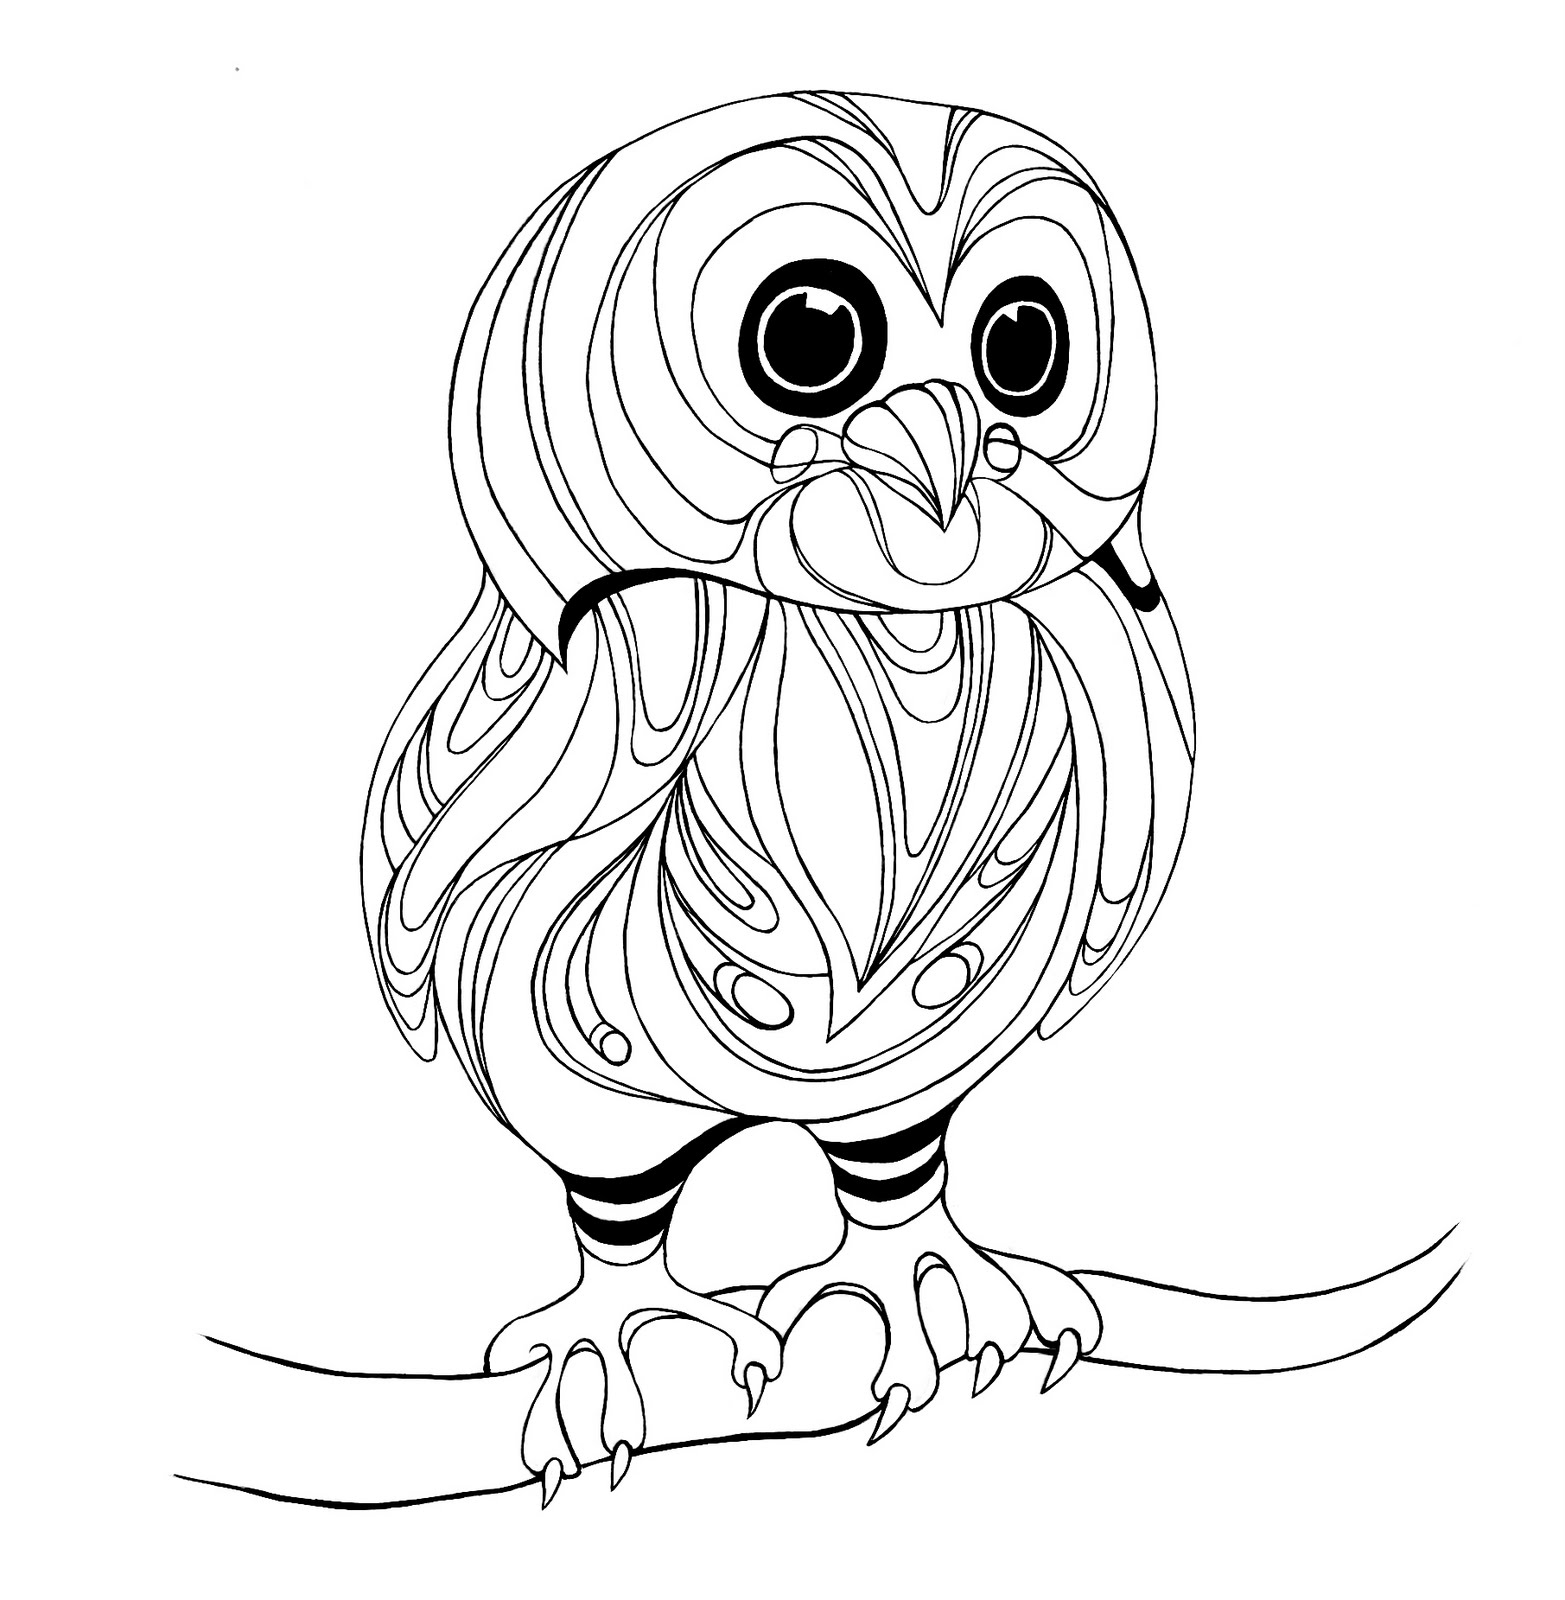 owl colouring sheets colleen keith art illustration blog woodland creatures sheets colouring owl